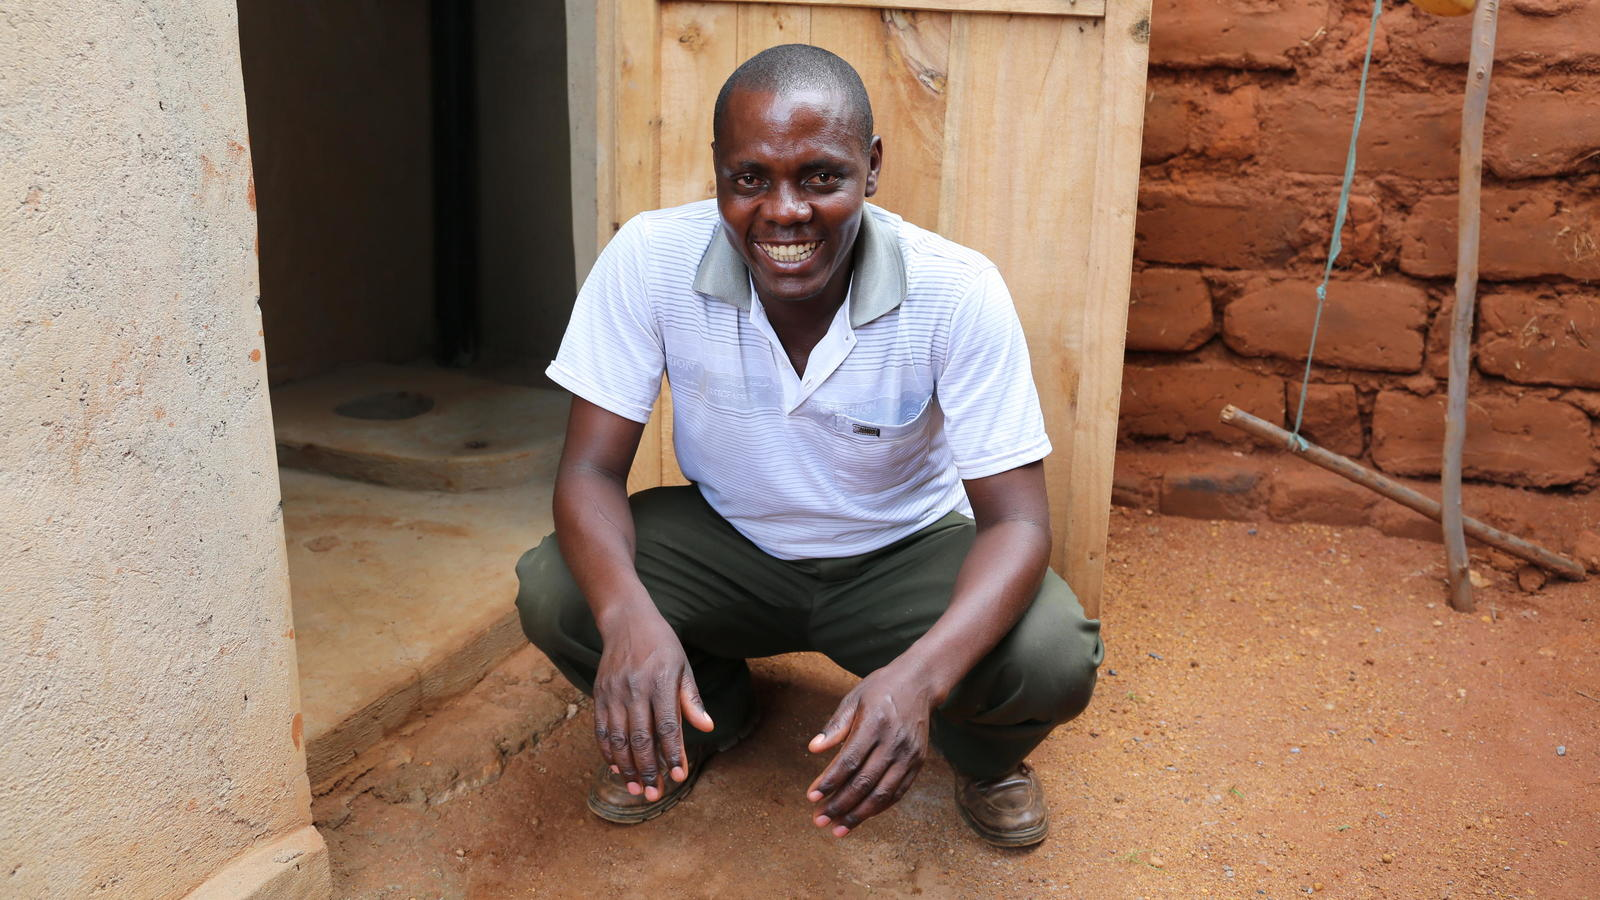 Rongin is one of the first people to own an ECO-SAN toilet in his village in Rwanda.